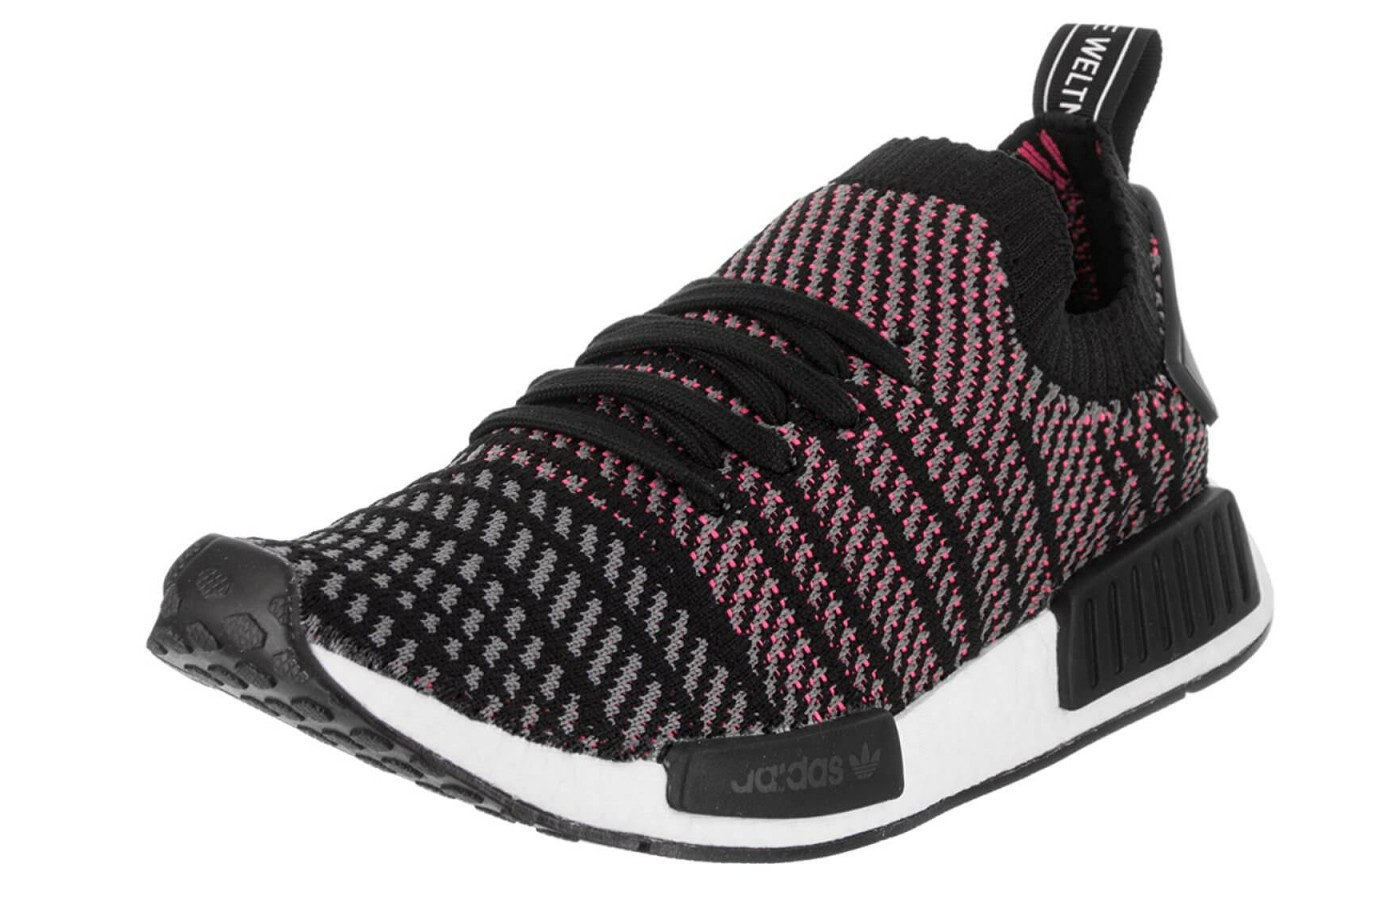 free shipping 93e48 7d467 The Adidas NMD R1 Stlt Primeknit features a Primeknit upper ...